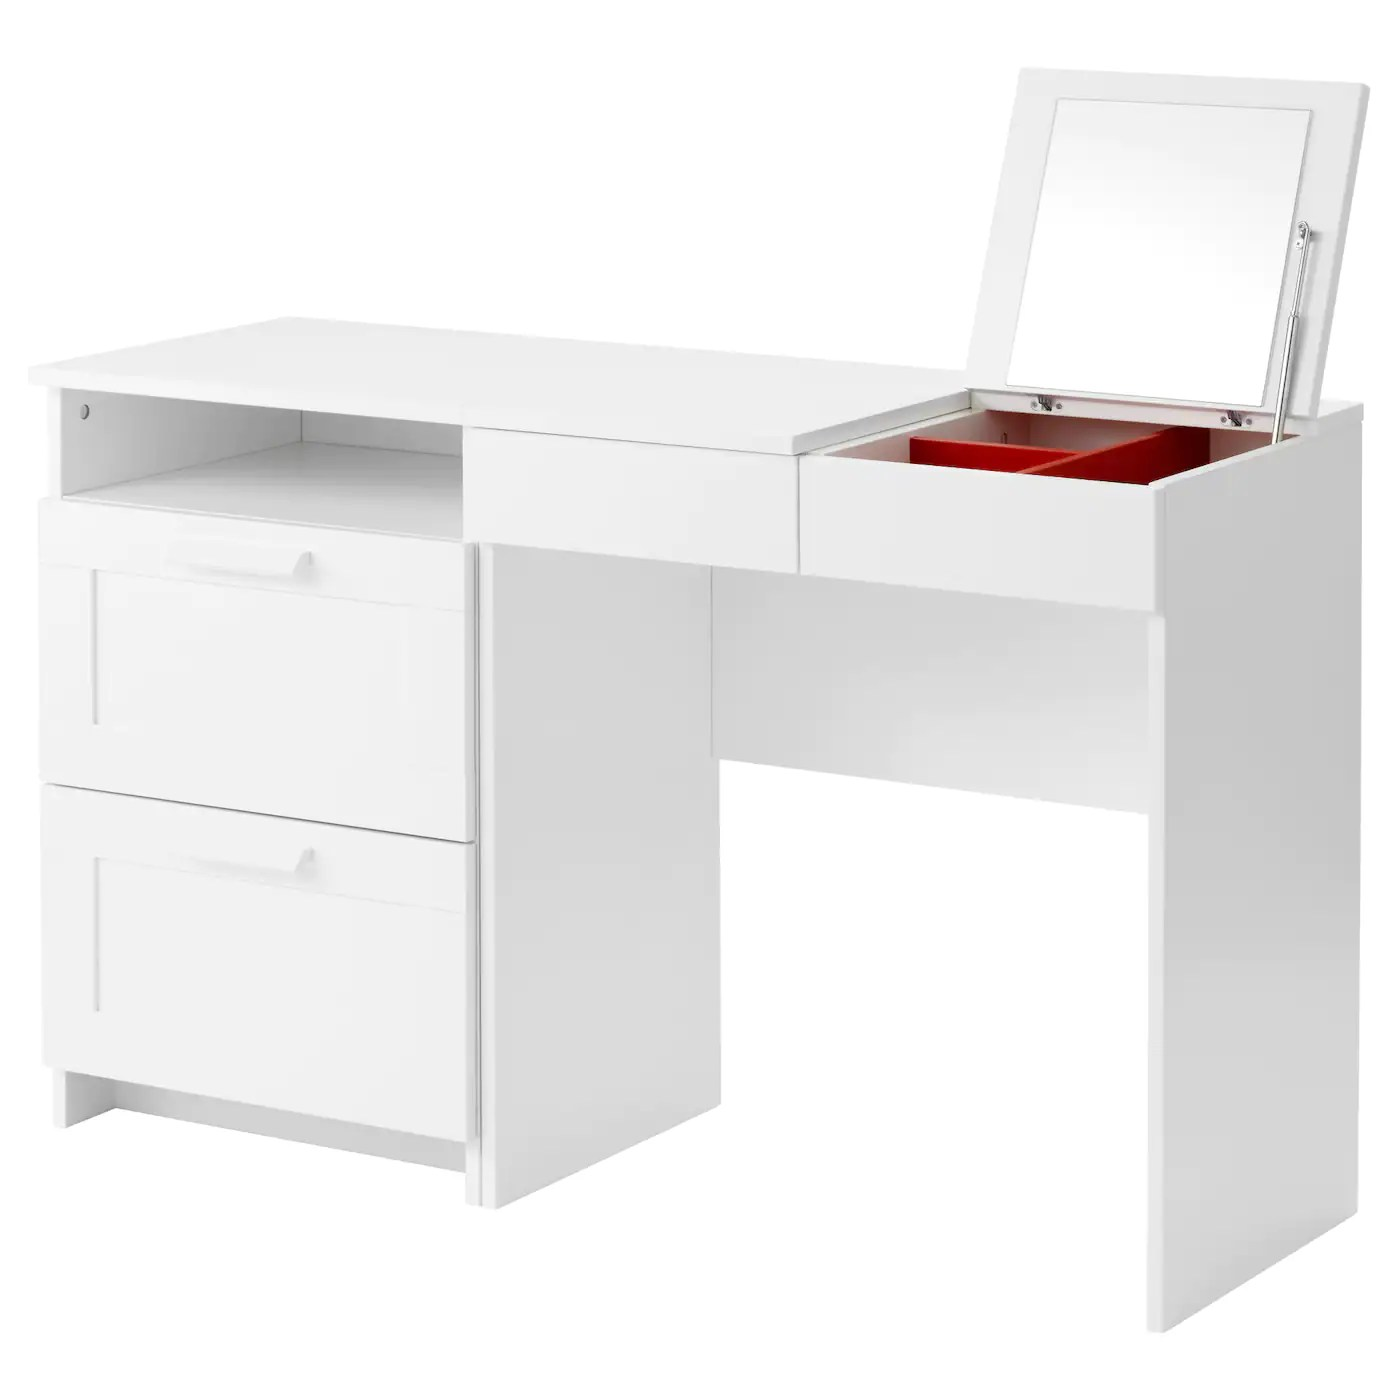 ikea kitchen table with drawers tall narrow cabinet brimnes dressing 43 chest of 2 white